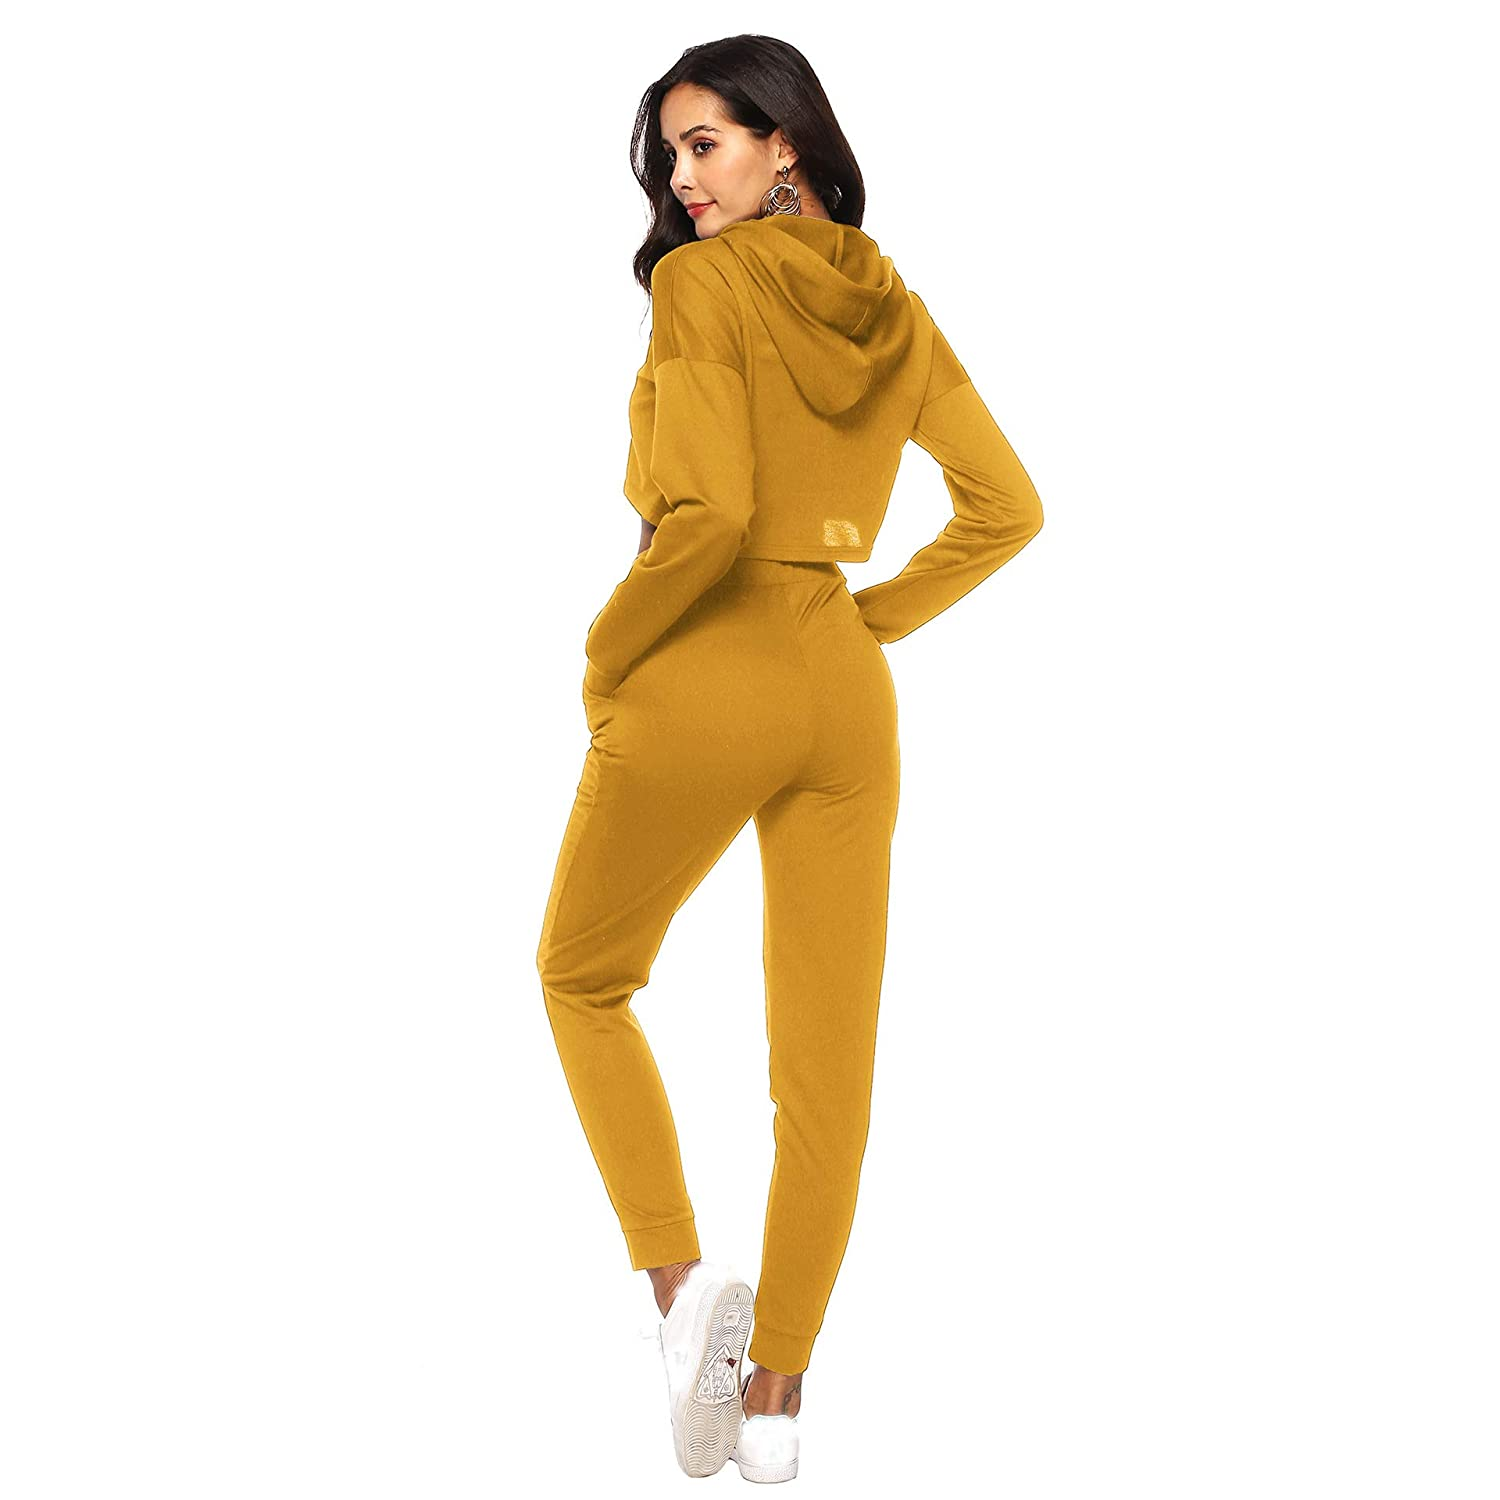 Rvxigzvi Women Casual Sports Sets Hoodie and Sweatpants Tracksuit Set Long Sleeve Crop Top Outfits Sportswear